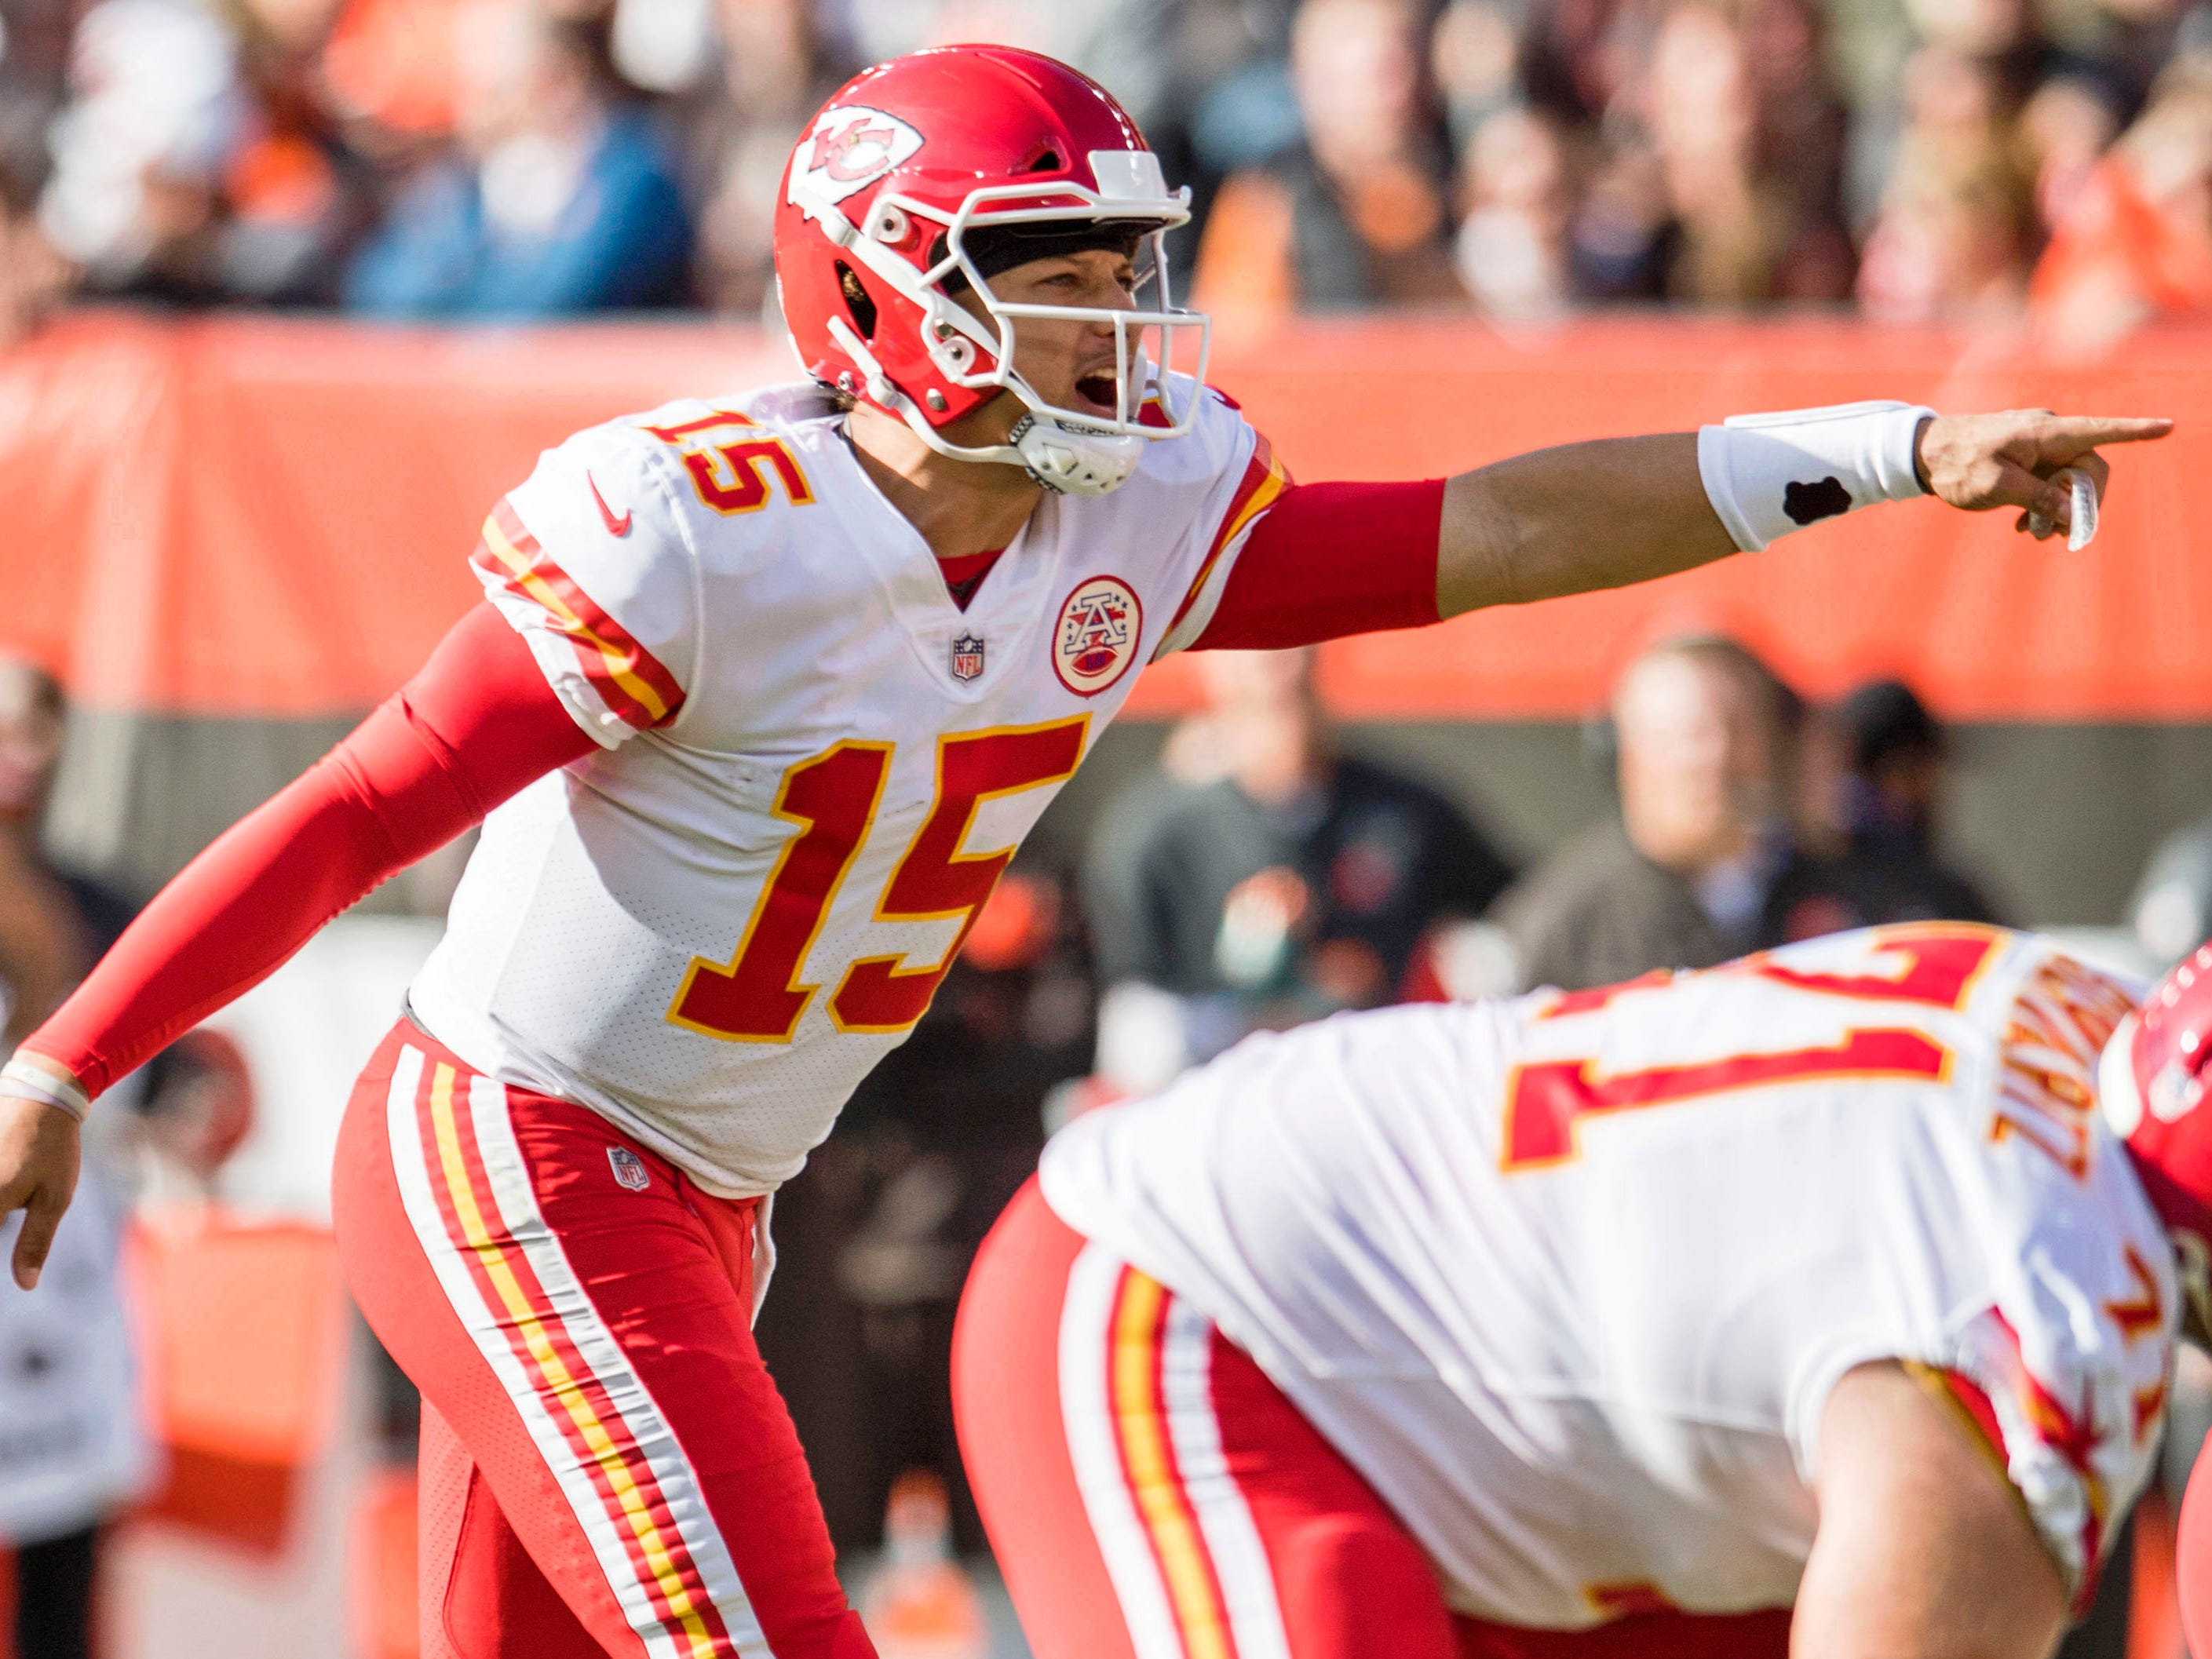 4. Chiefs (4): Patrick Mahomes continues grabbing headlines, but defense quietly jelling into decent unit even as it adapts sans Justin Houston, Eric Berry.